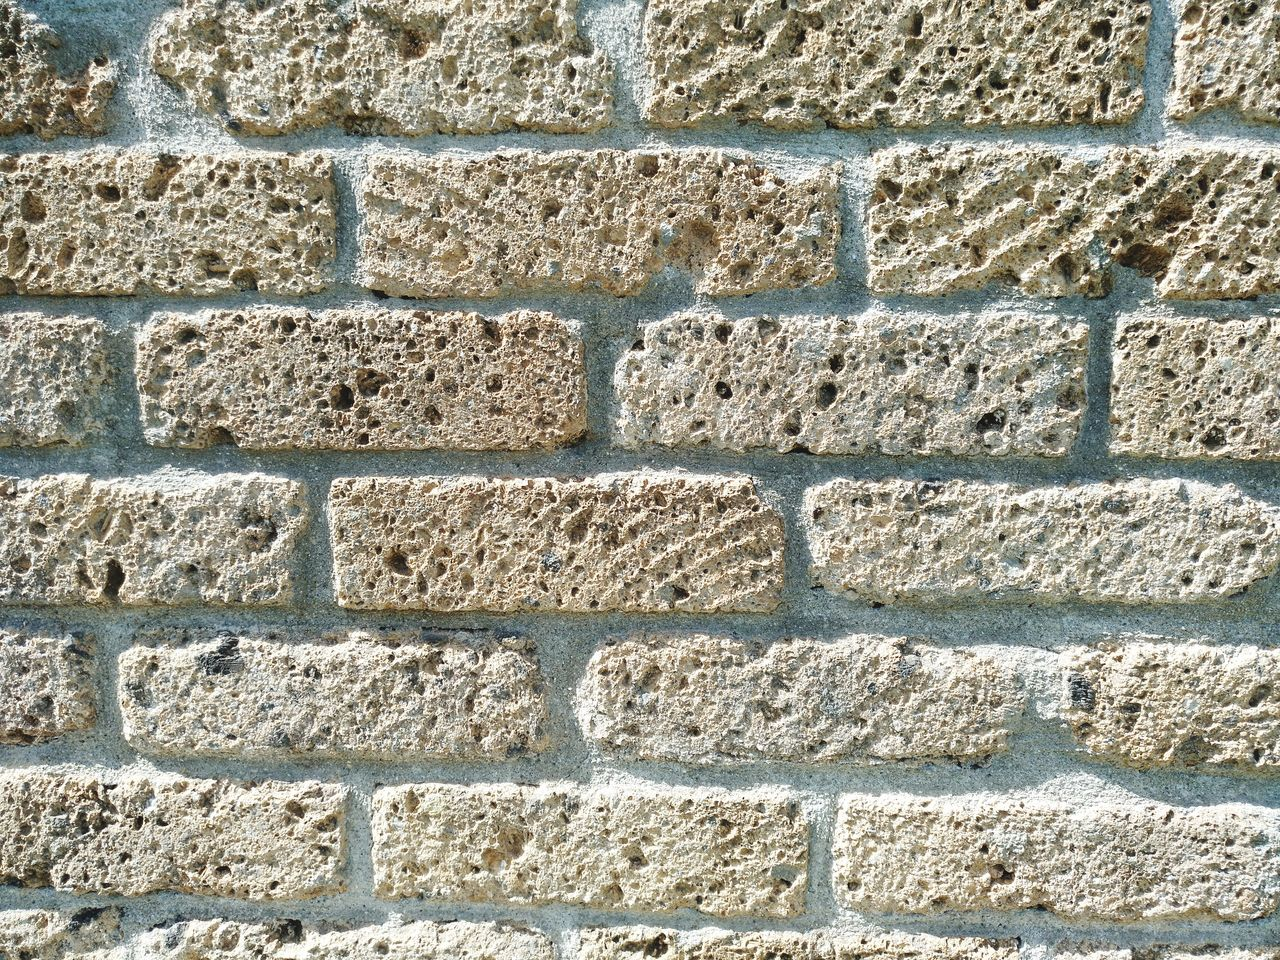 wall - building feature, brick wall, architecture, built structure, textured, backgrounds, building exterior, outdoors, full frame, day, no people